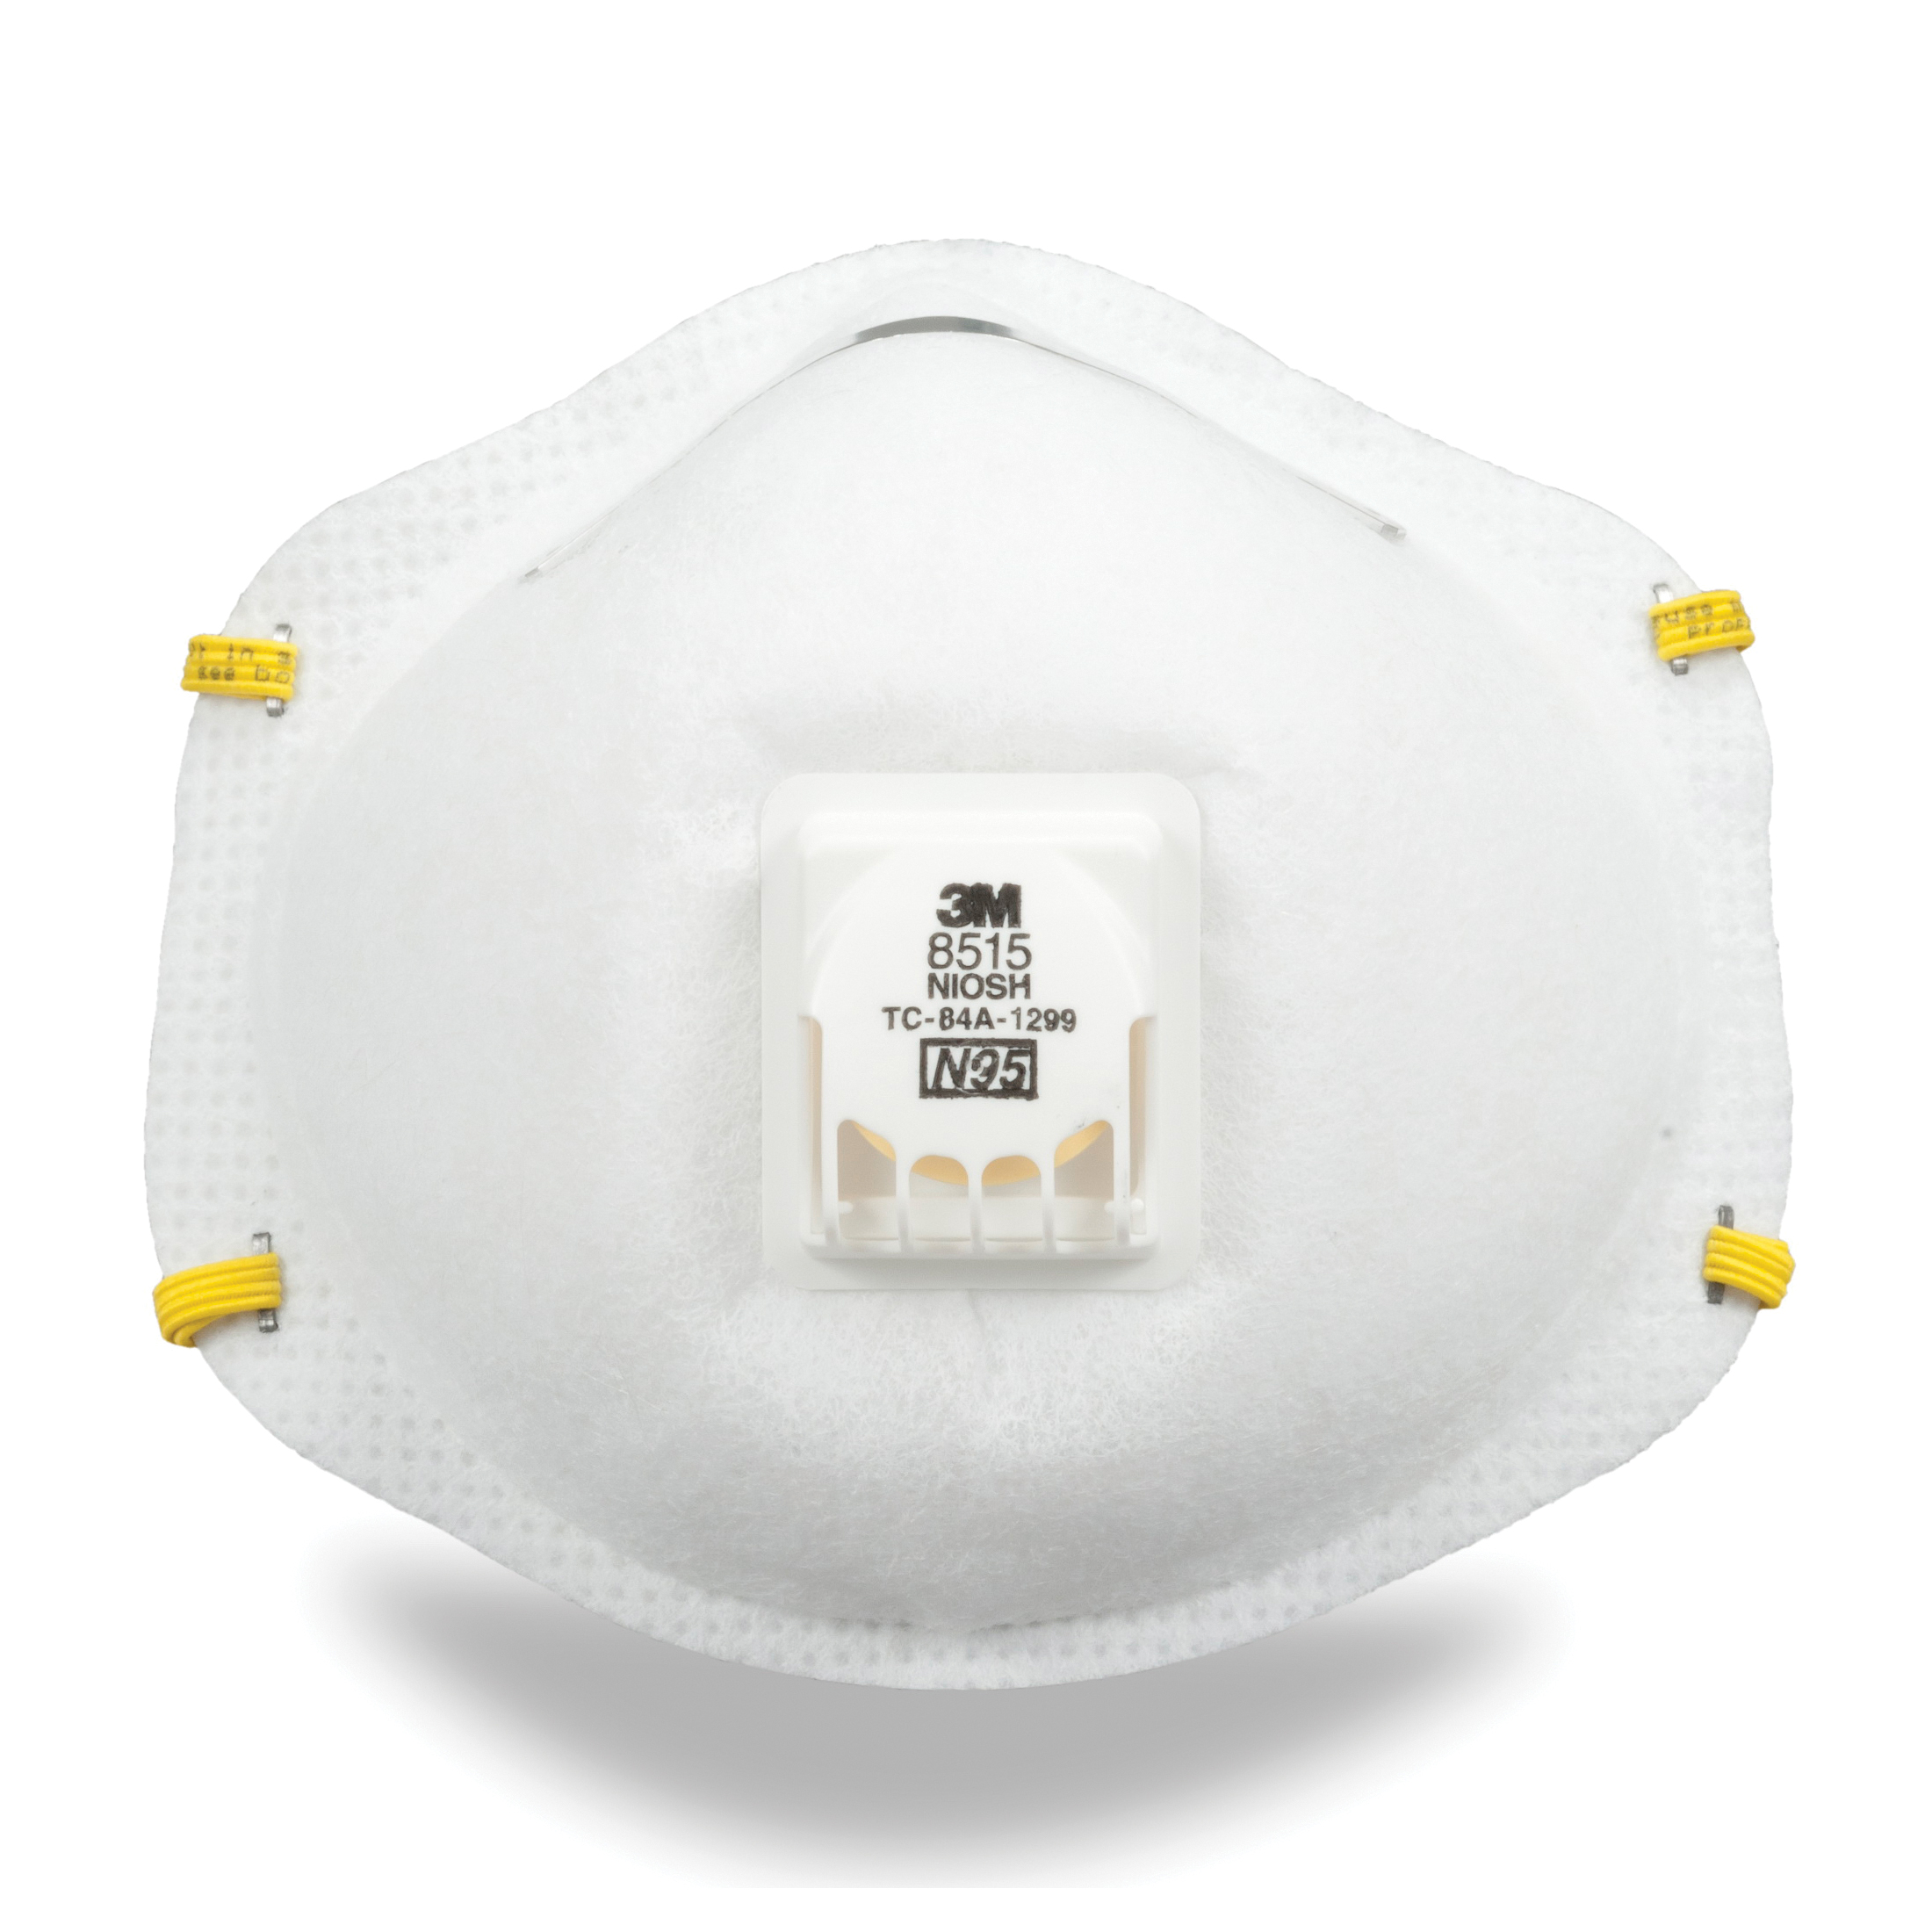 3M™ 051131-07189 Cup Style Disposable Particulate Welding Respirator With Cool Flow™ Exhalation Valve and Adjustable M-Nose Clip, Standard, Resists: Certain Non-Oil Based Particles